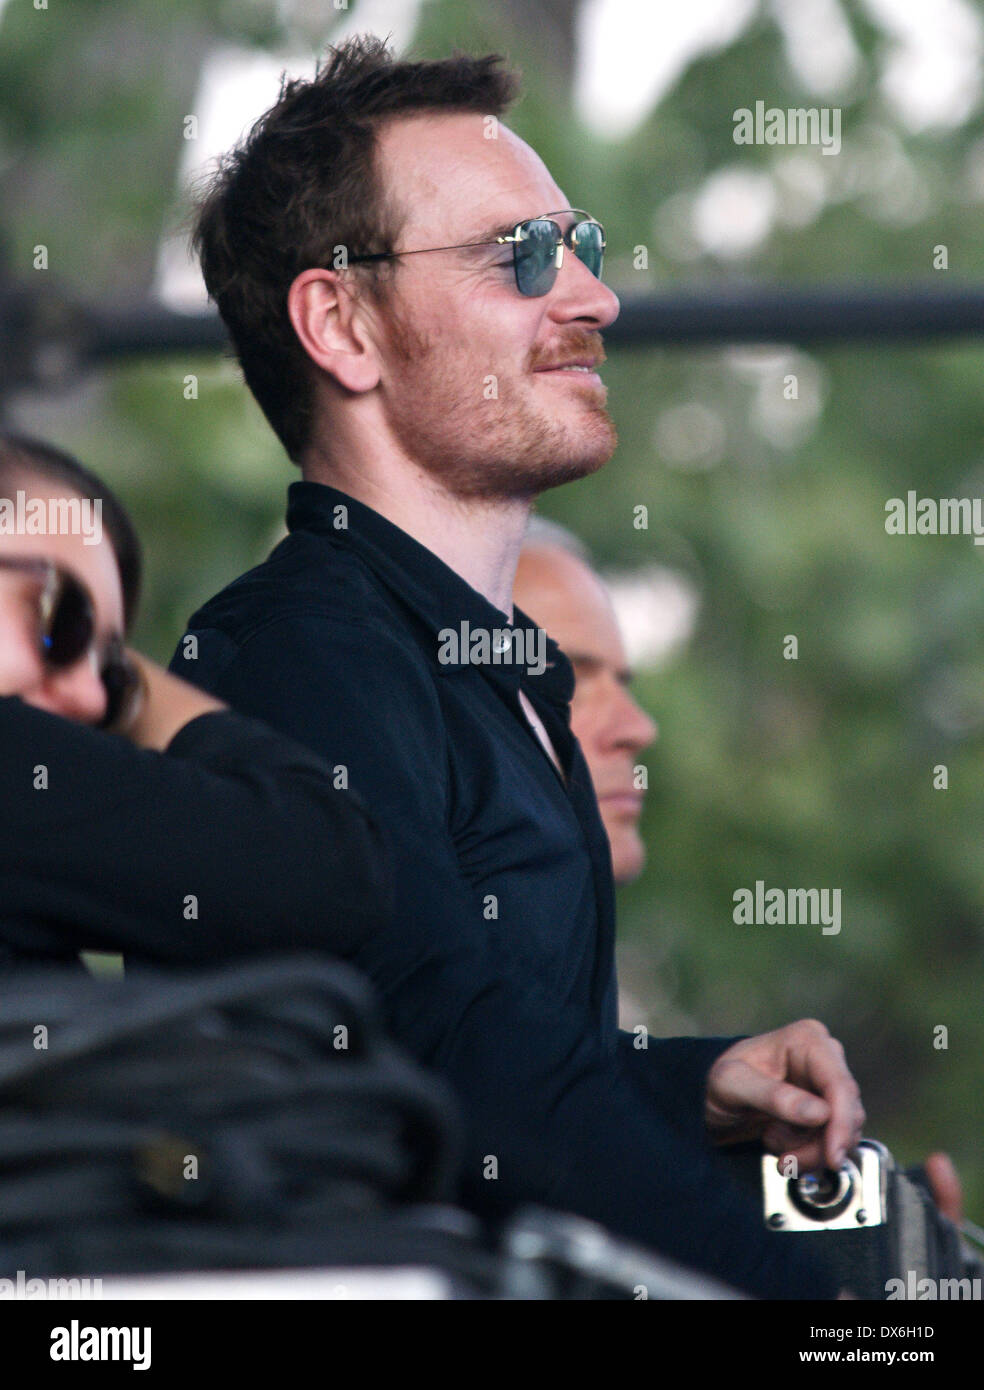 Michael Fassbender on the set of 'Untitled Terrence Malick Project' at the Fun Fun Fun Fest Austin, Texas - 02.11.12 Featuring: Michael Fassbender Where: United States When: 02 Nov 2012 - Stock Image